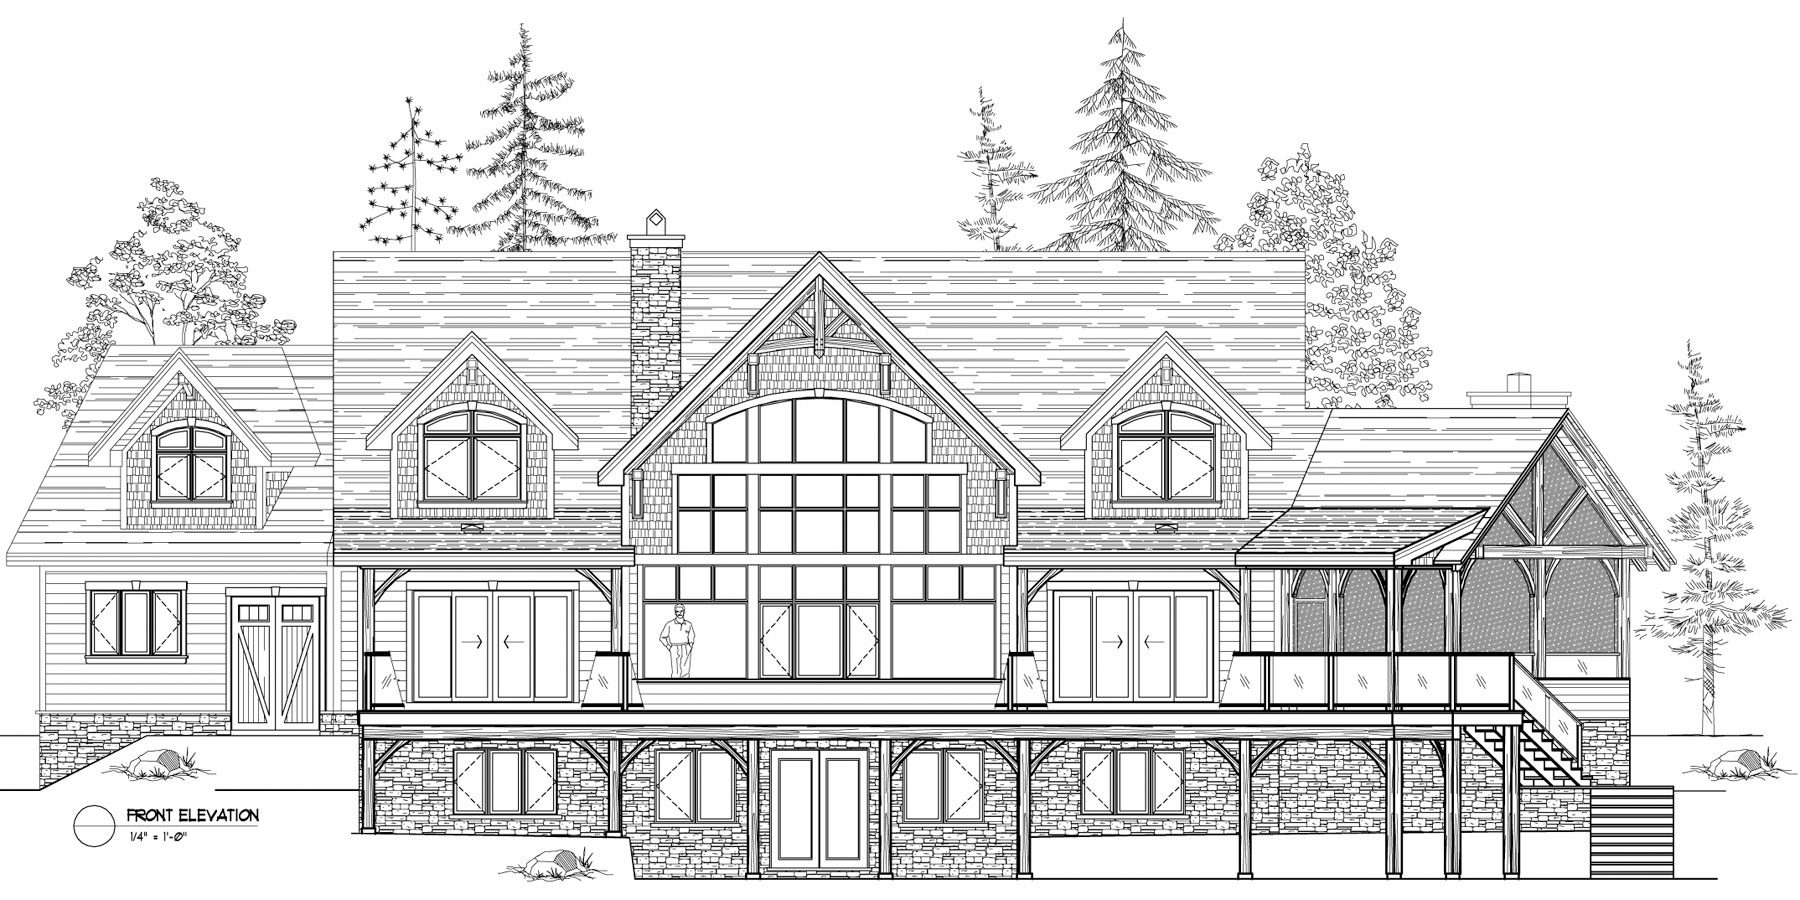 Normerica Timber Frame, House Plan, The Kearns 3510, Front Elevation